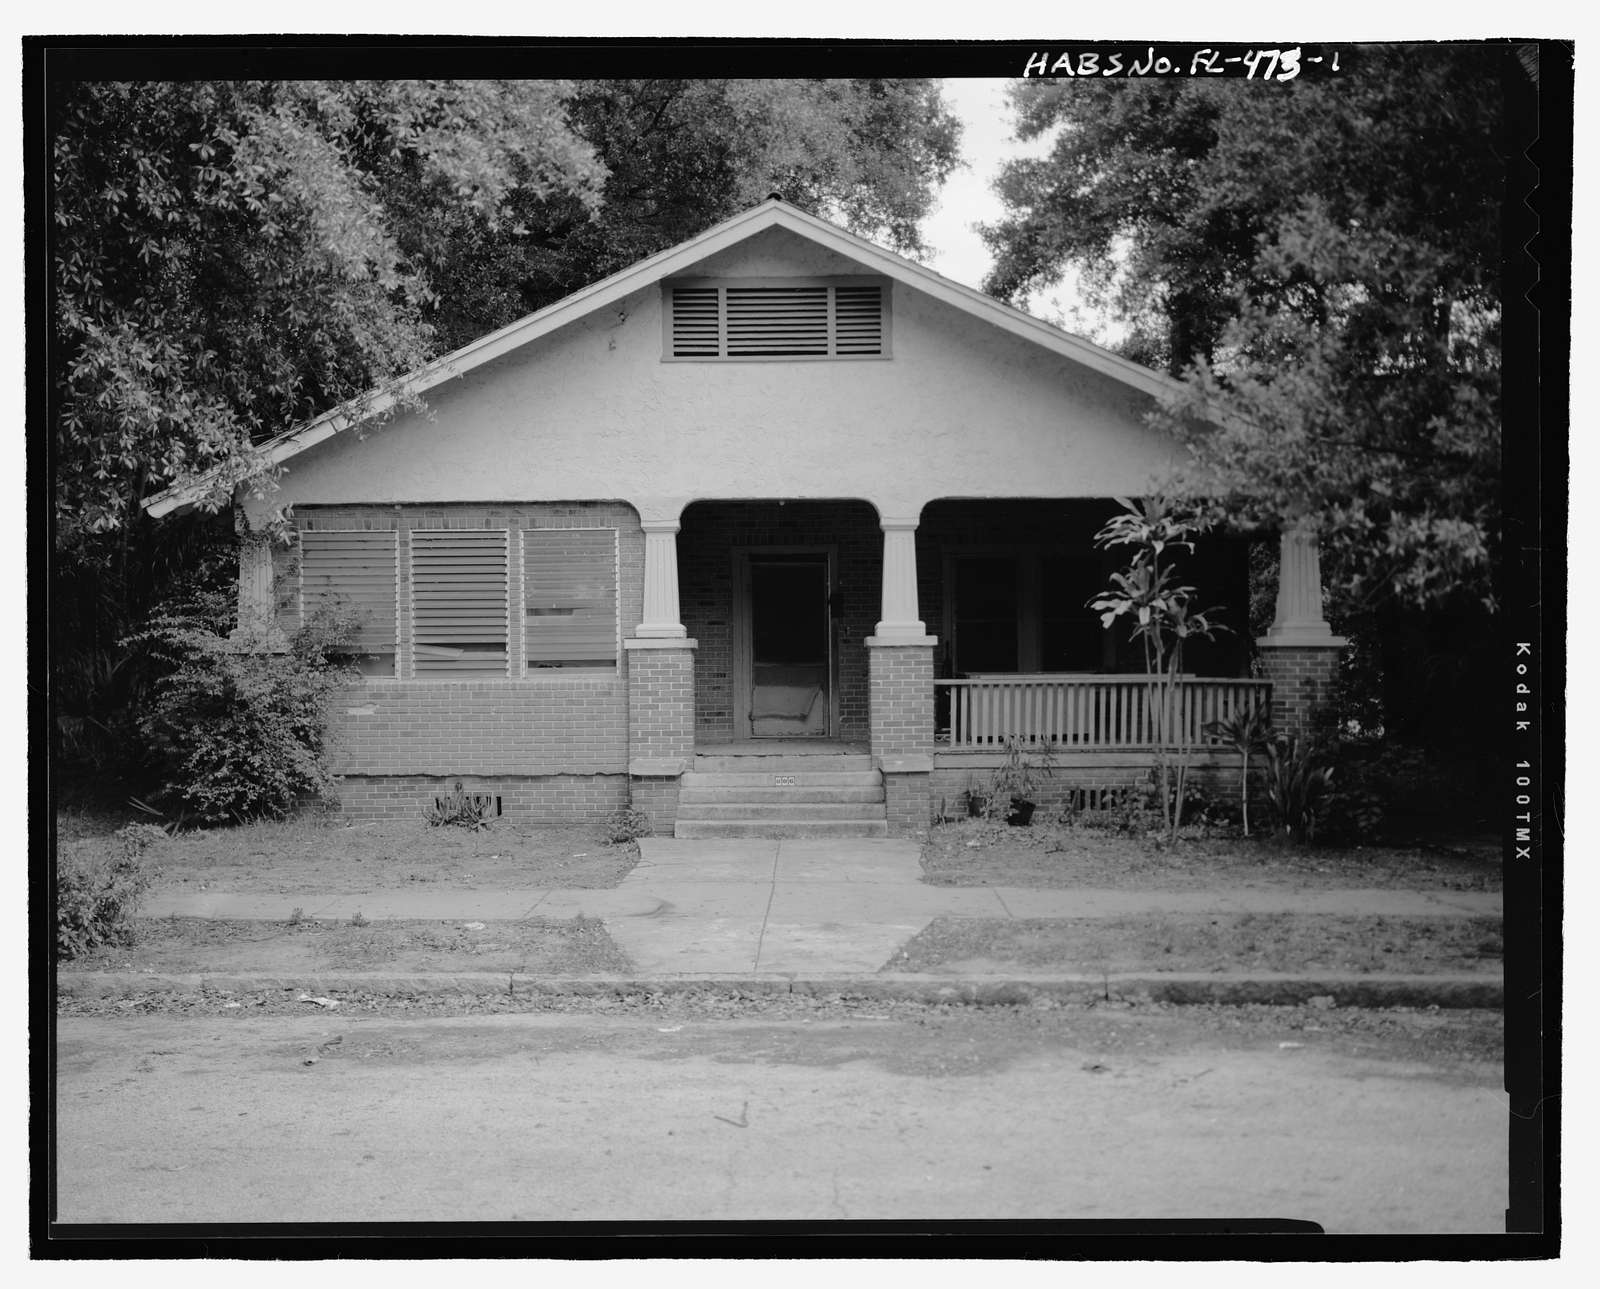 606 East Frances Street (House), Tampa, Hillsborough County, FL